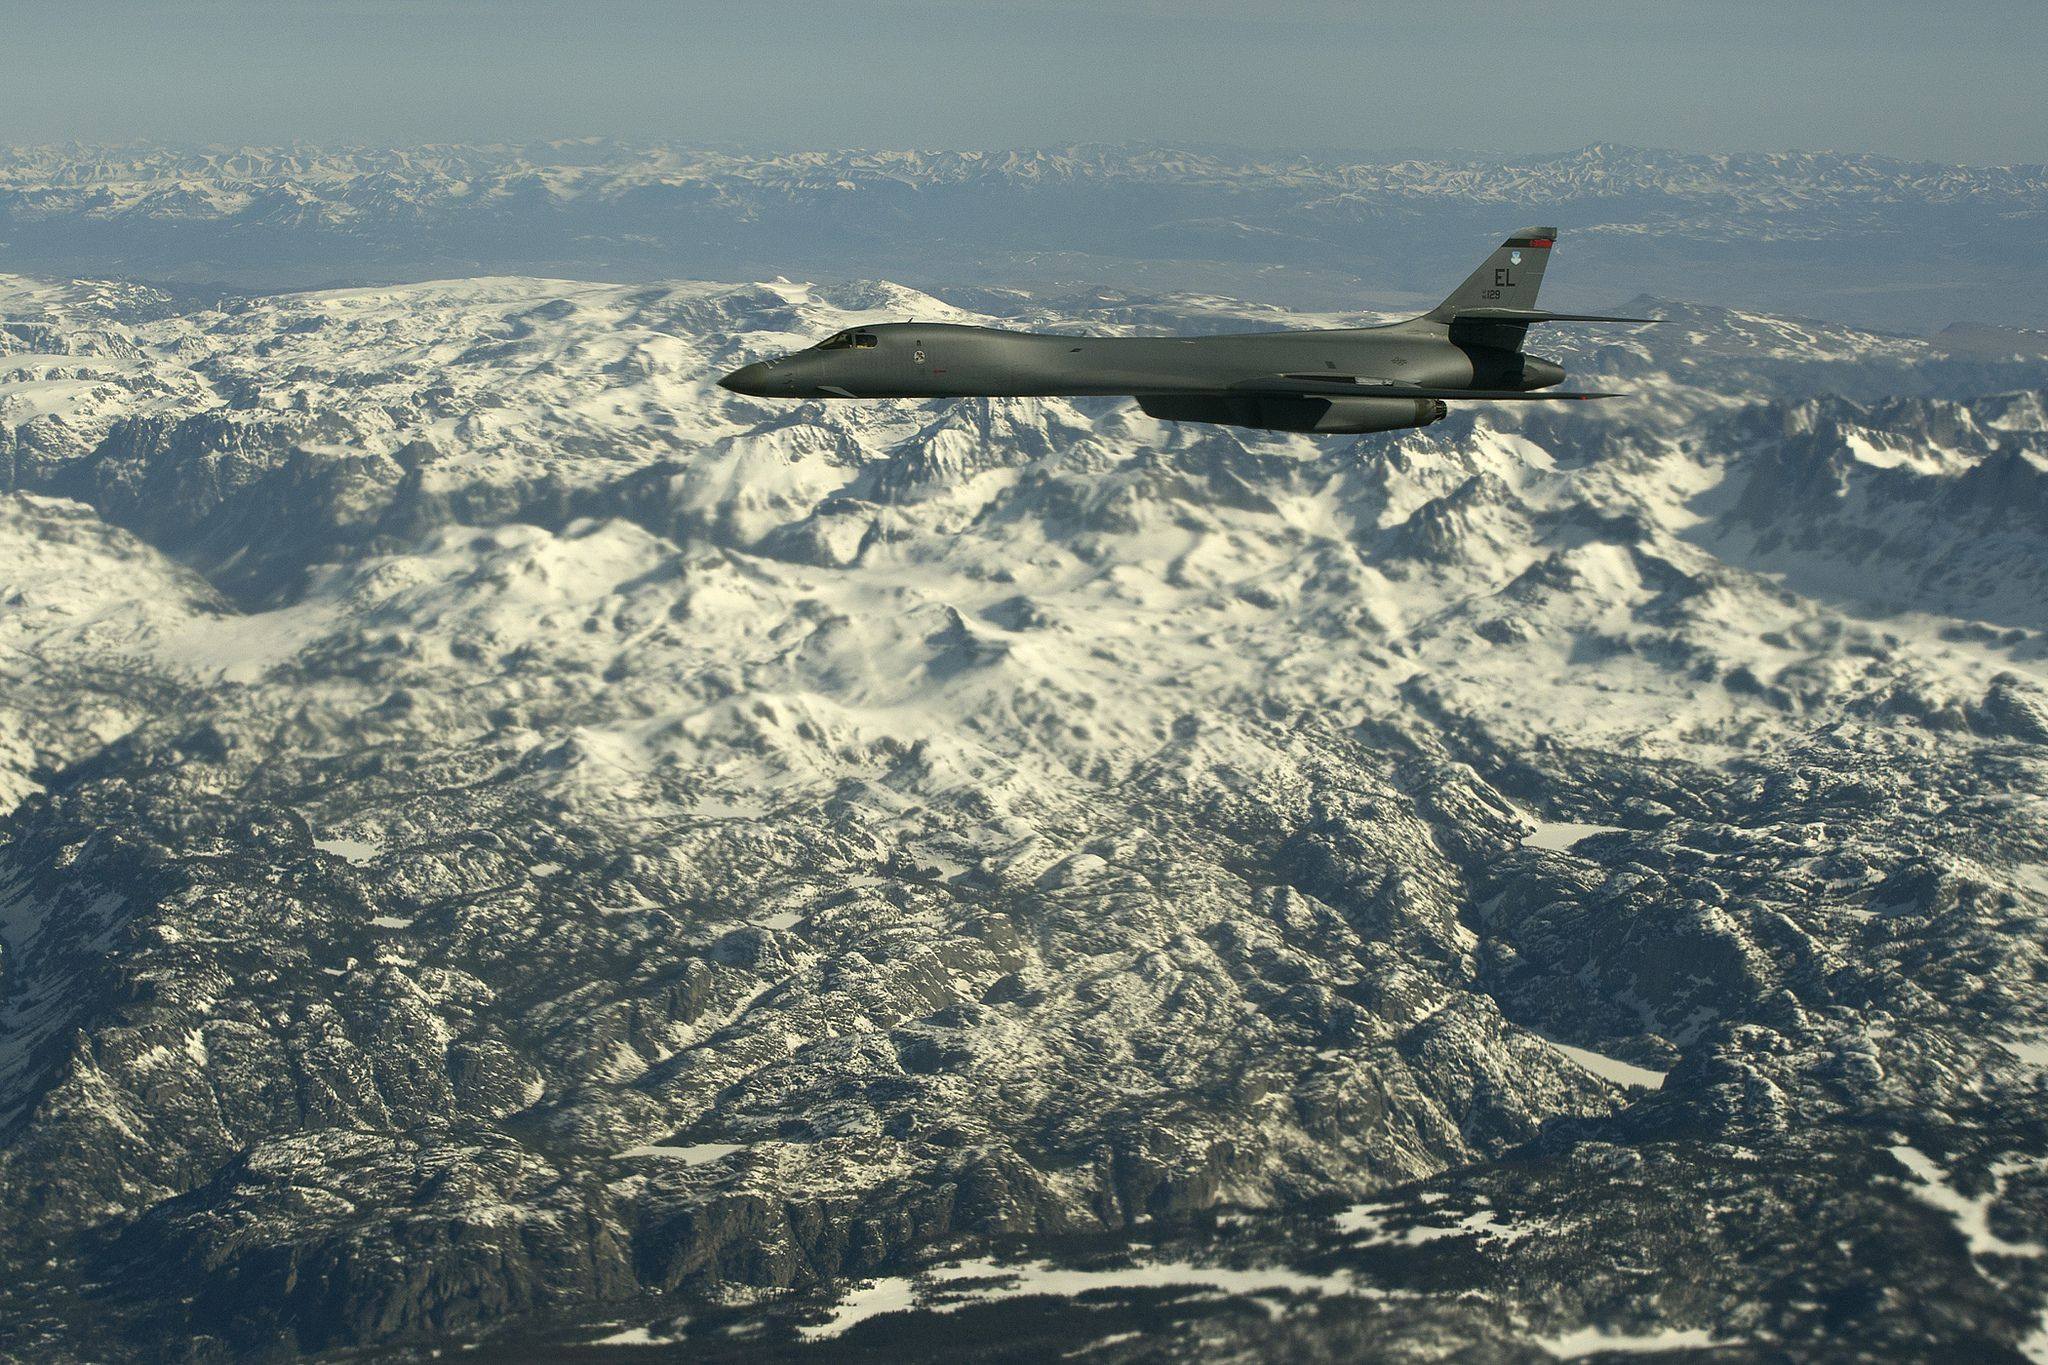 120410FYL744098 Aircraft, Military aircraft, Fighter jets